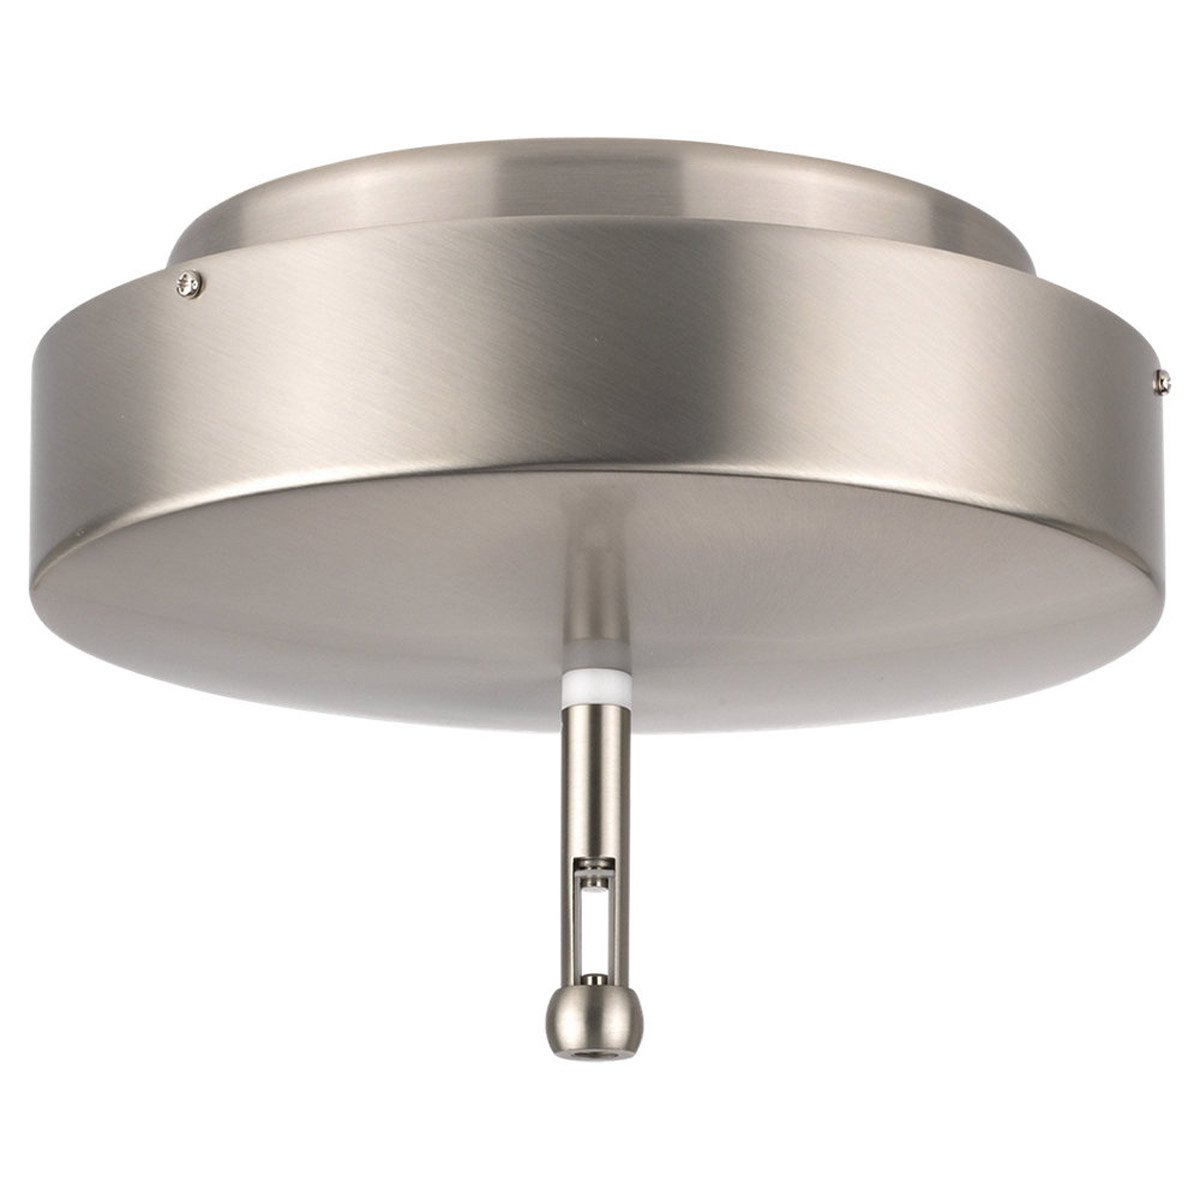 Sea Gull Lighting Ambiance RTx Surface Mount Power Feed with Transformer in Brushed Stainless 95305-98